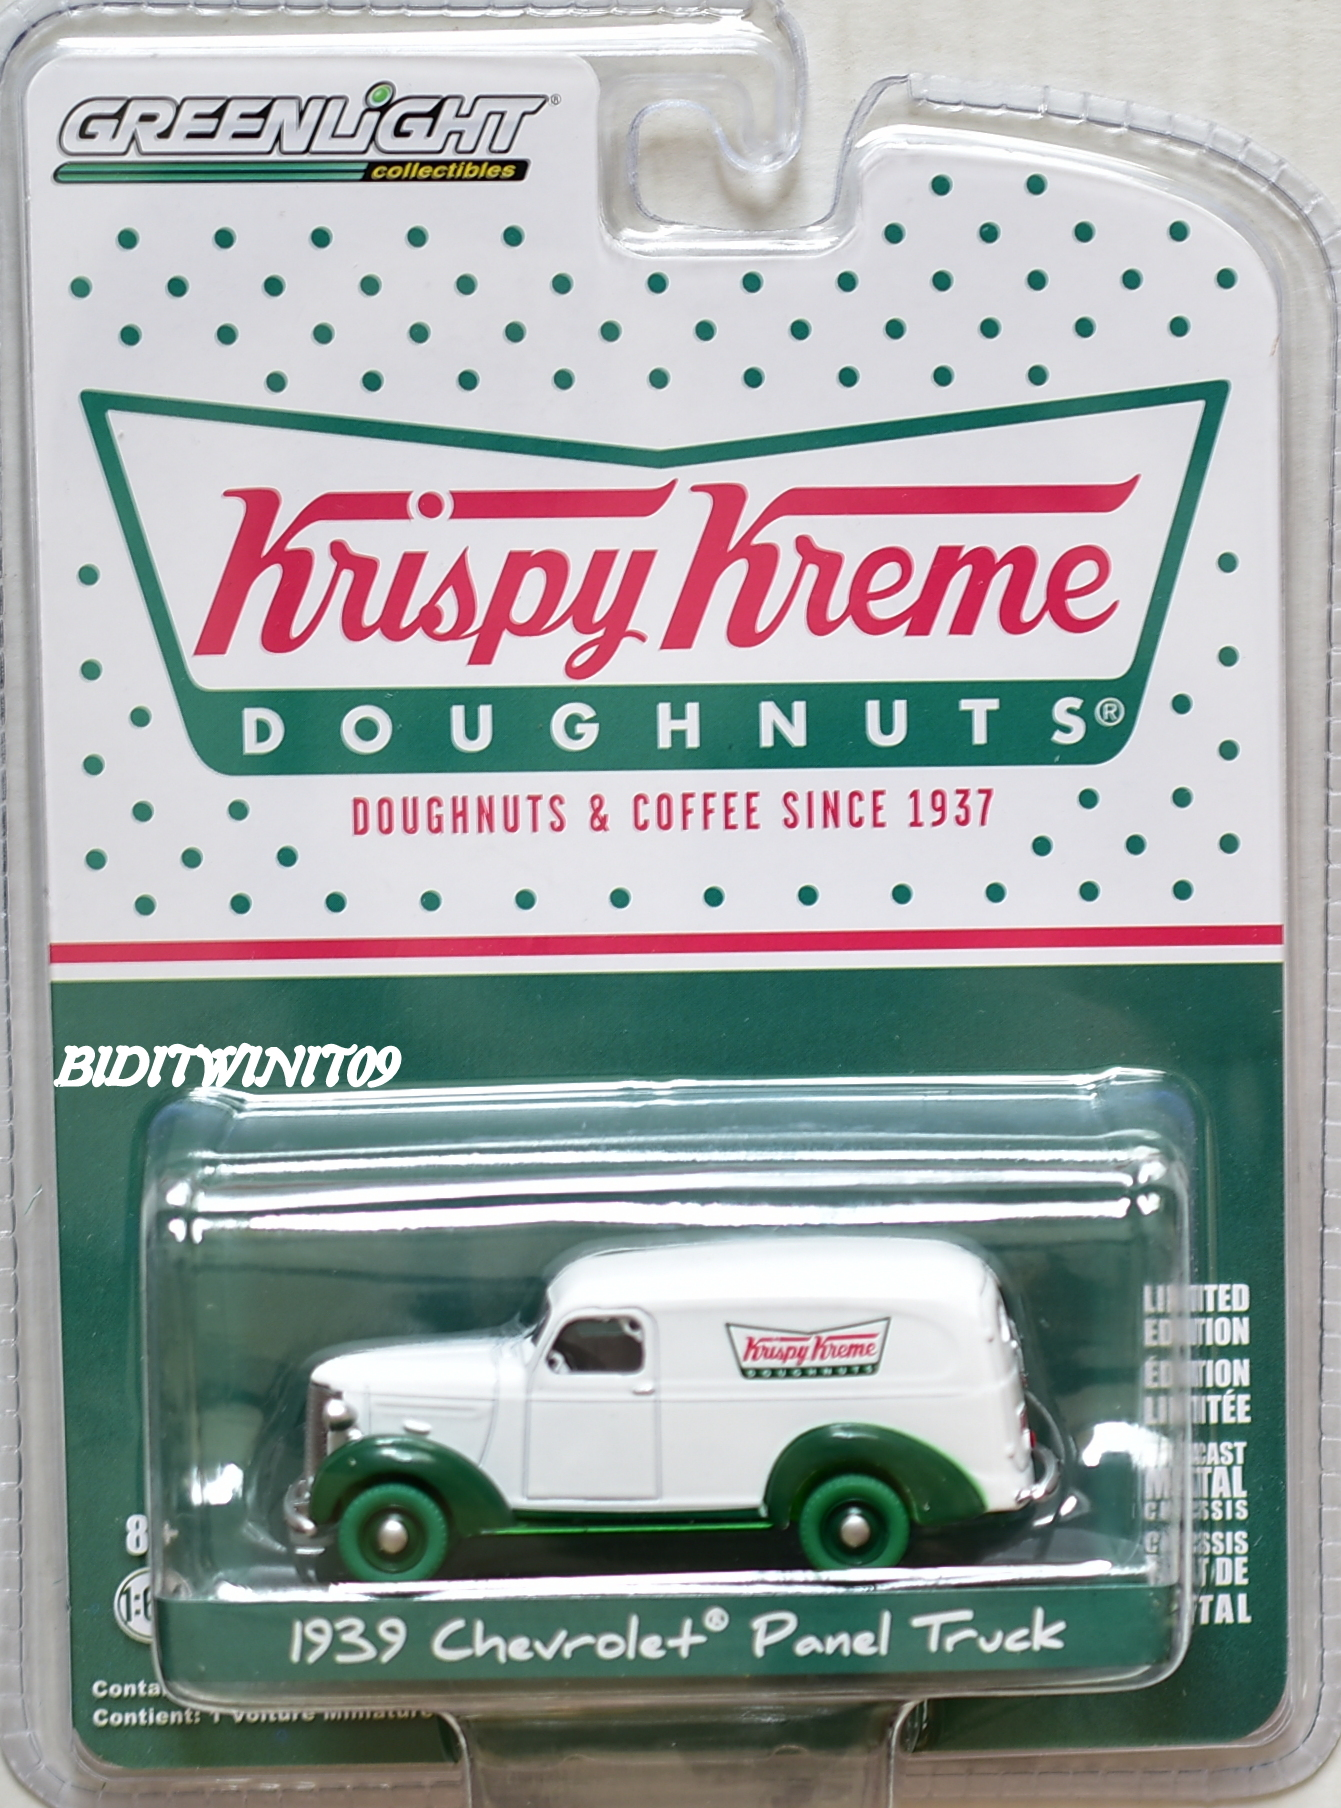 GREENLIGHT KRISPY KREME DOUGHNUTS 1939 CHEVROLET PANEL TRUCK GREEN MACHINE E+